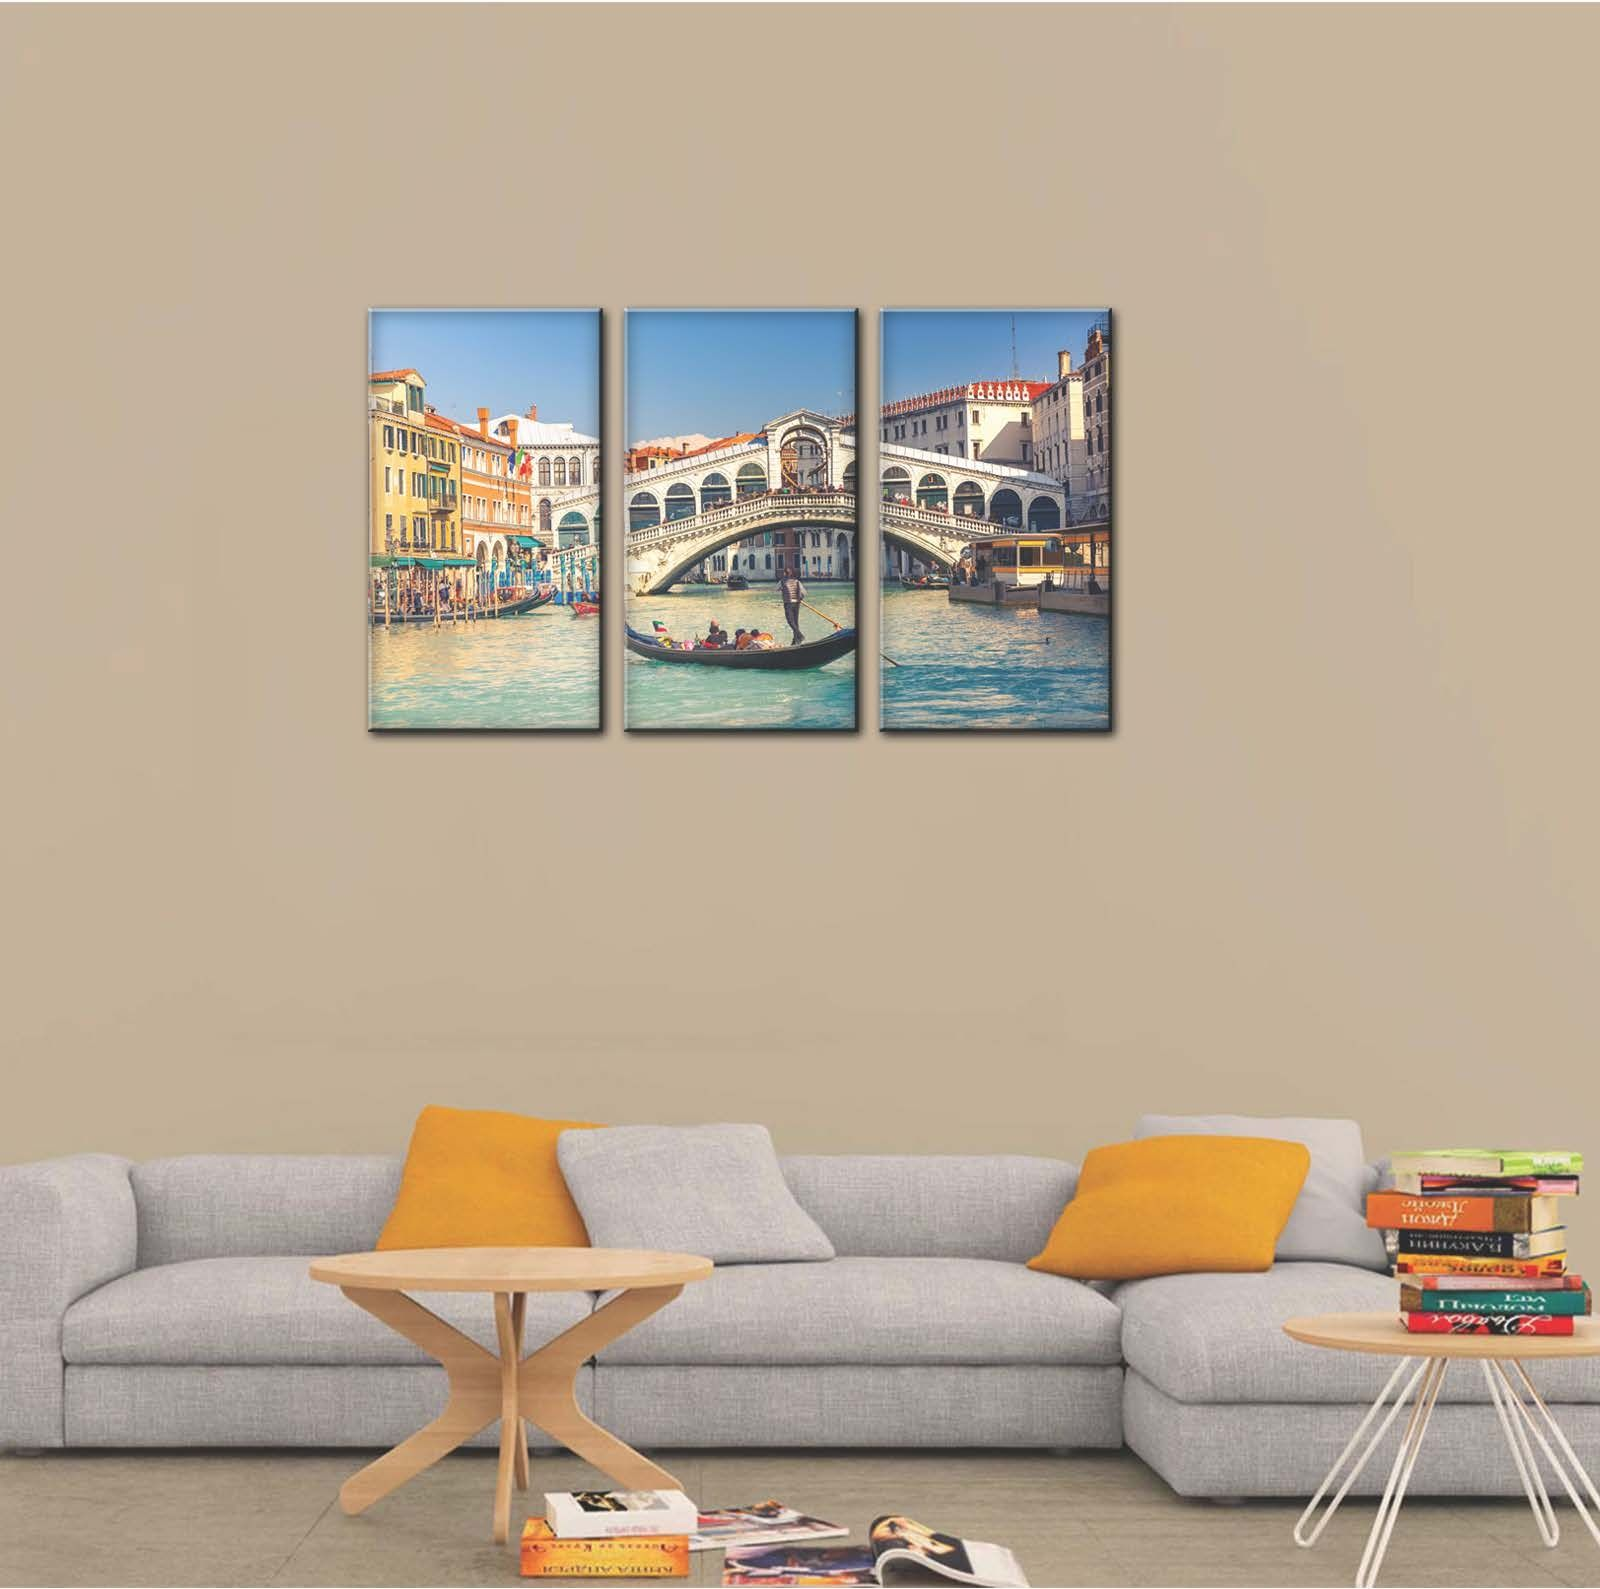 Print Plus Rialto Bridge Venice Italy Canvas Wall Art Painting 30cm X 40cm X 3 Pcs